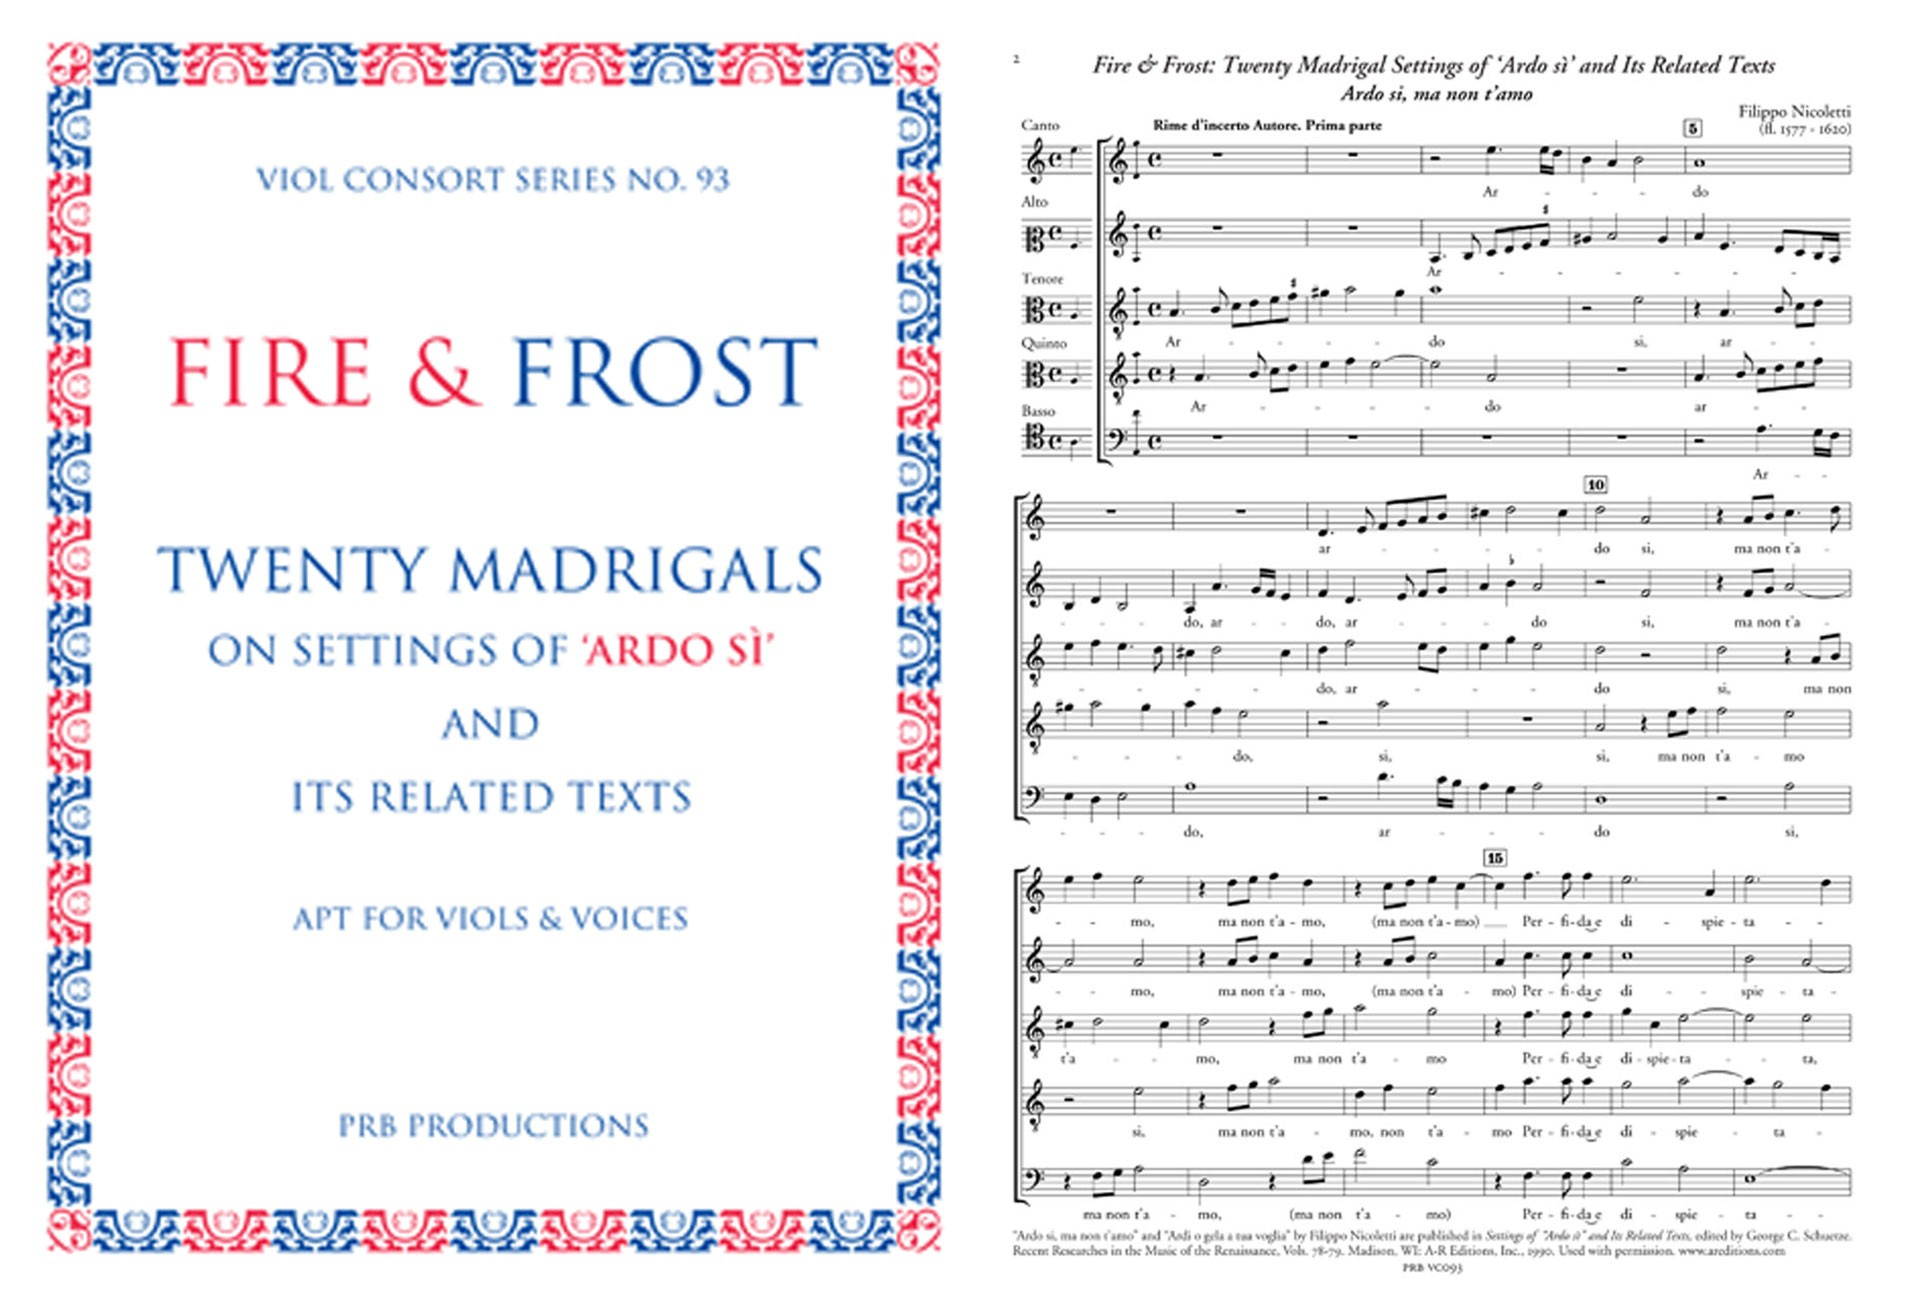 Fire & Frost, 20 Madrigals on 'Ardo sì', Score